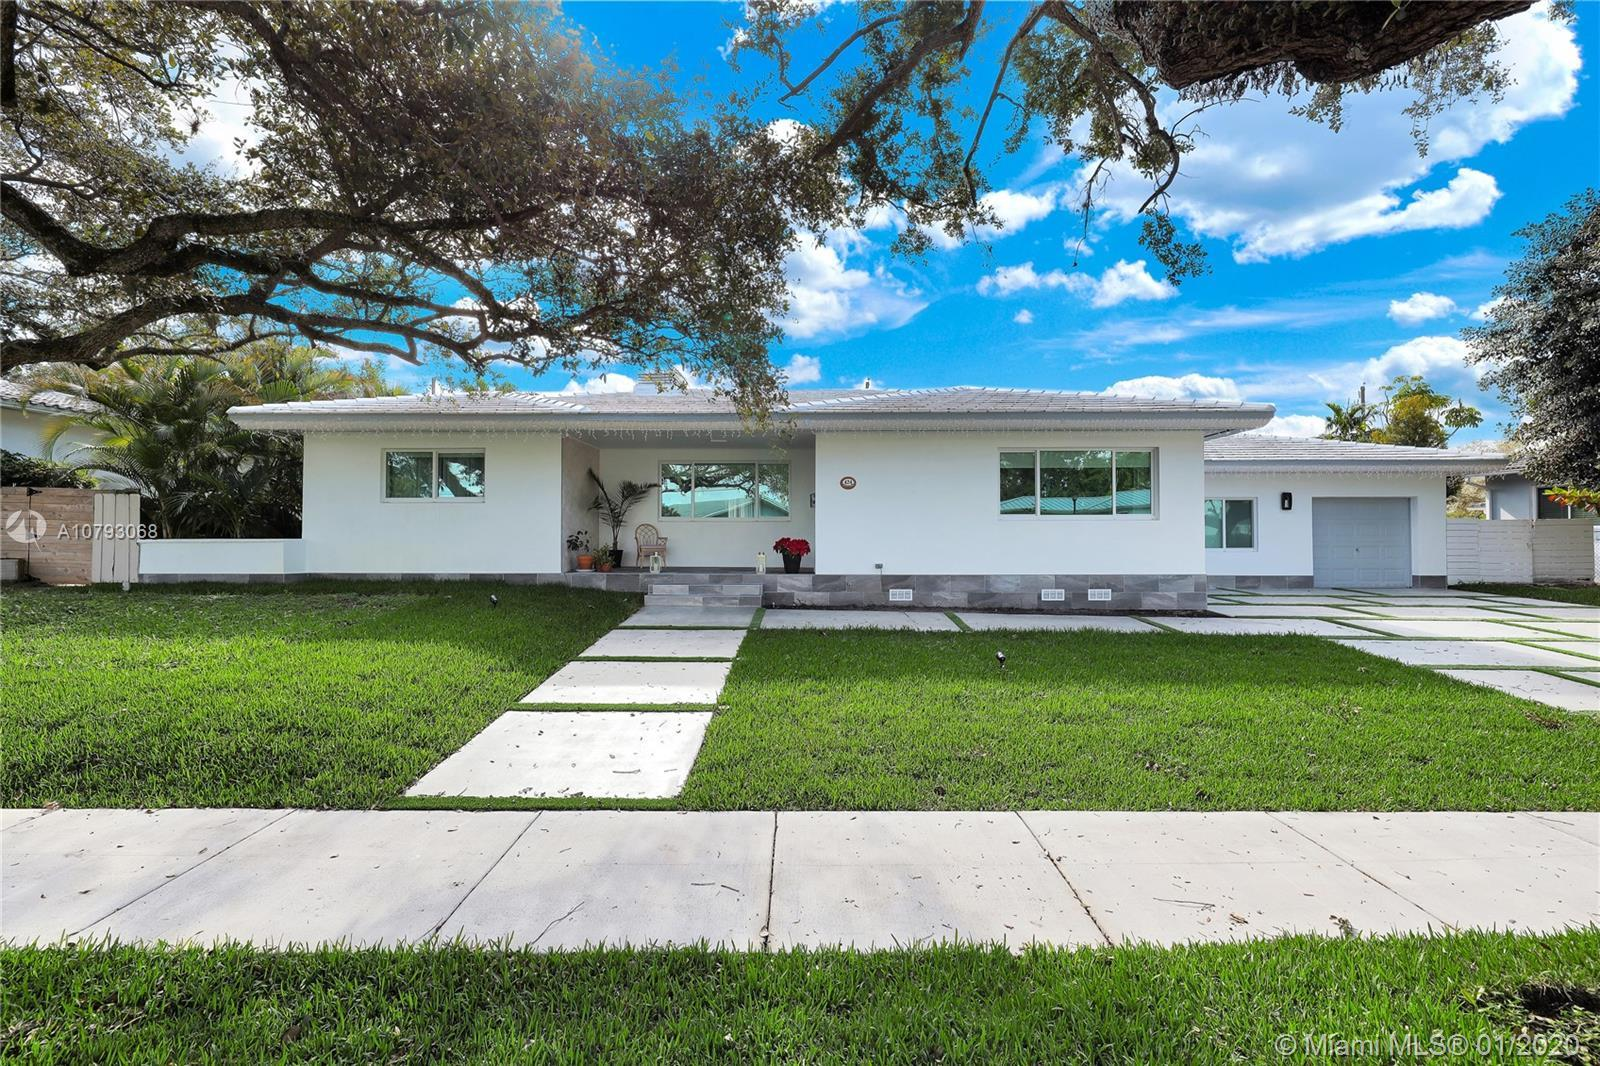 Remarkable Homes in the Heart of  Miami Shores, this property has been recently updated totaling $10